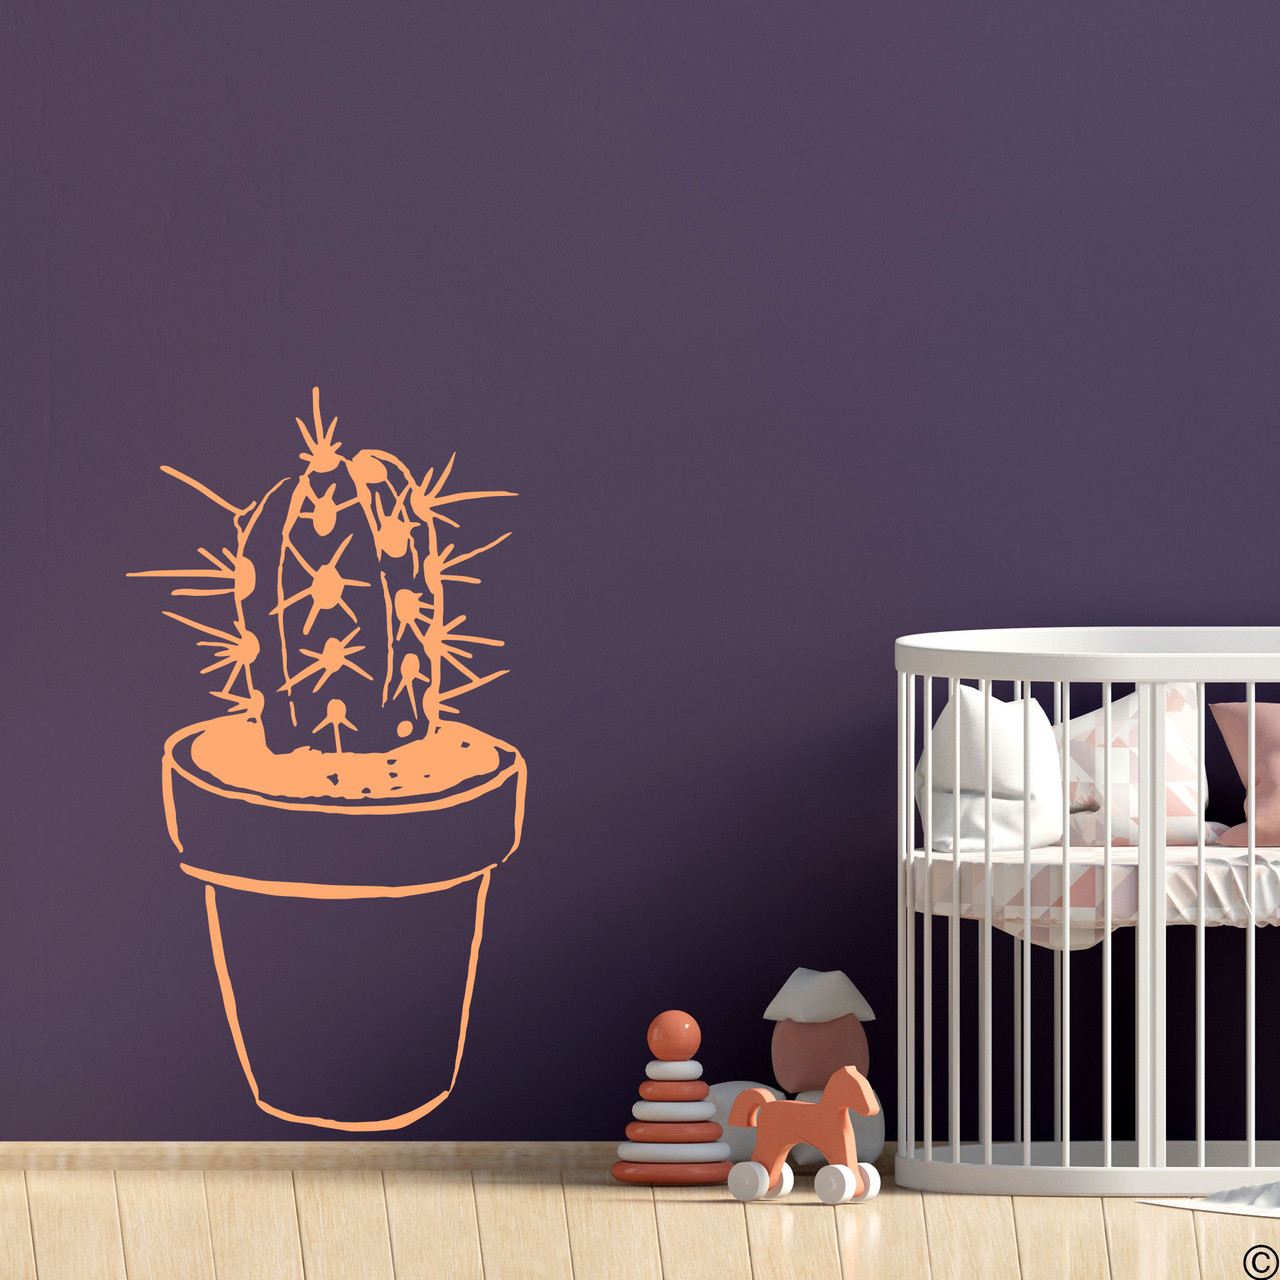 The hand drawn potted cactus wall decal in limited edition apricot vinyl color.